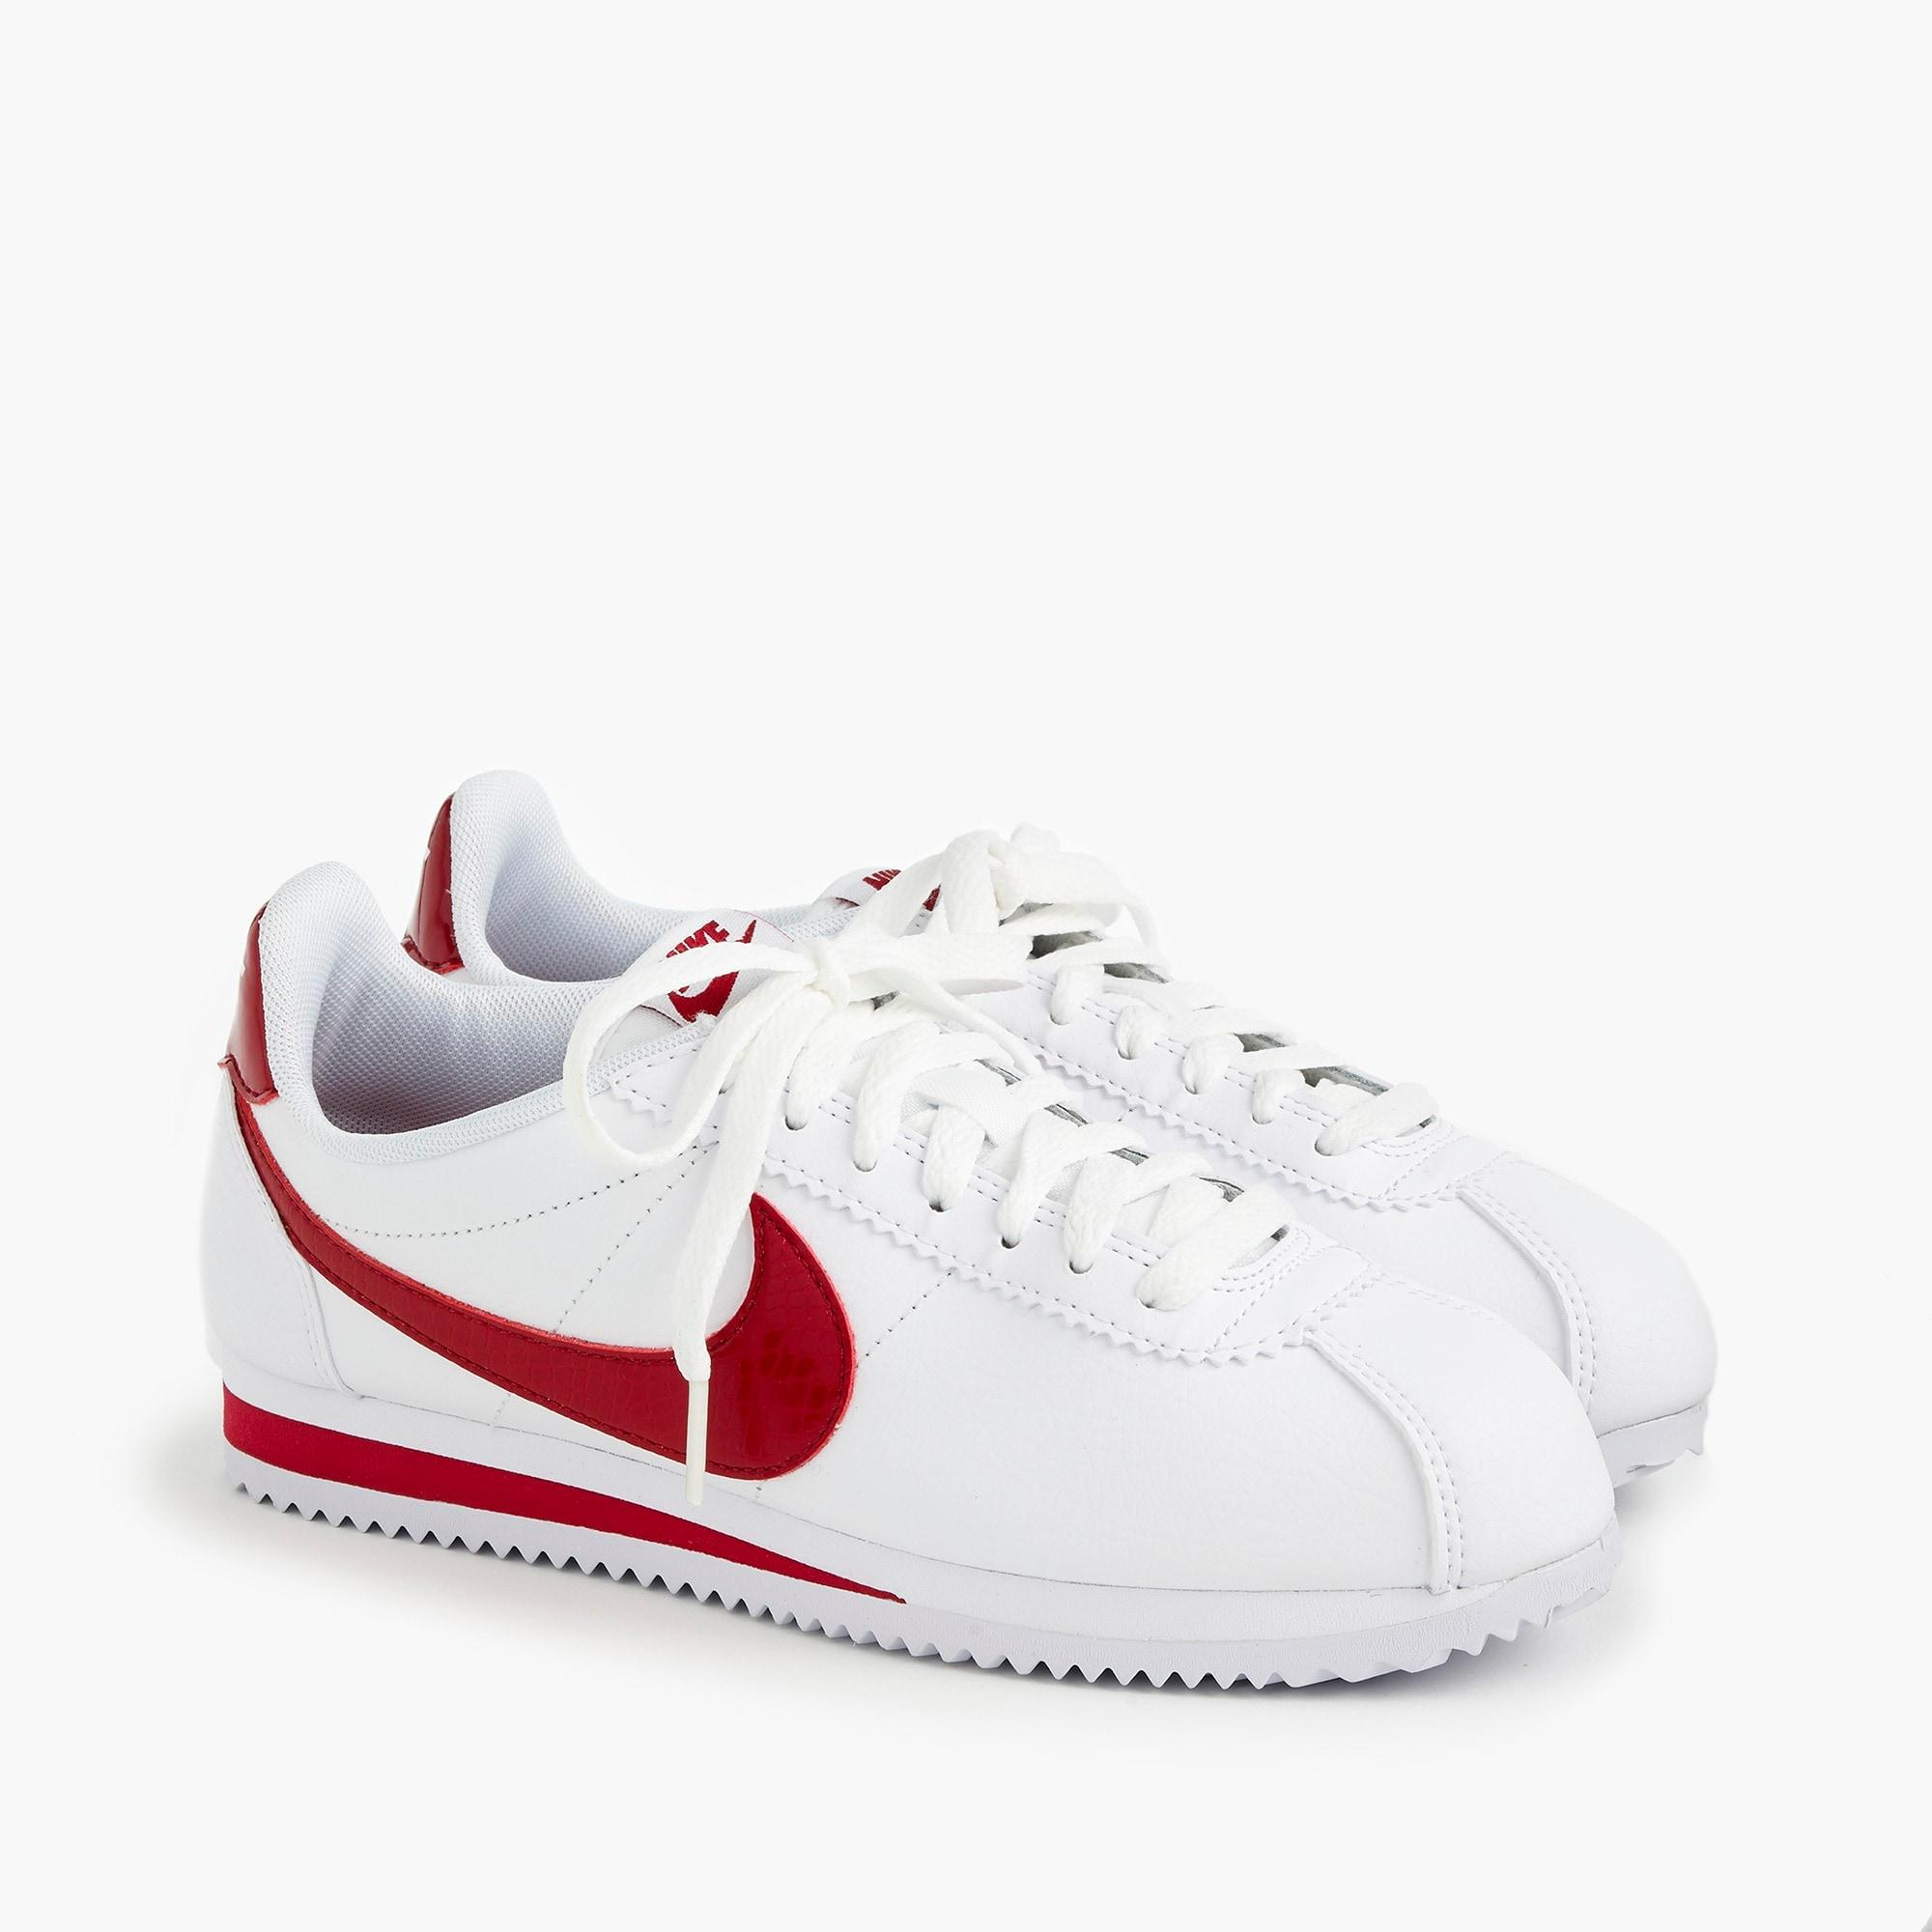 Nike ® Cortez Sneakers In Leather in